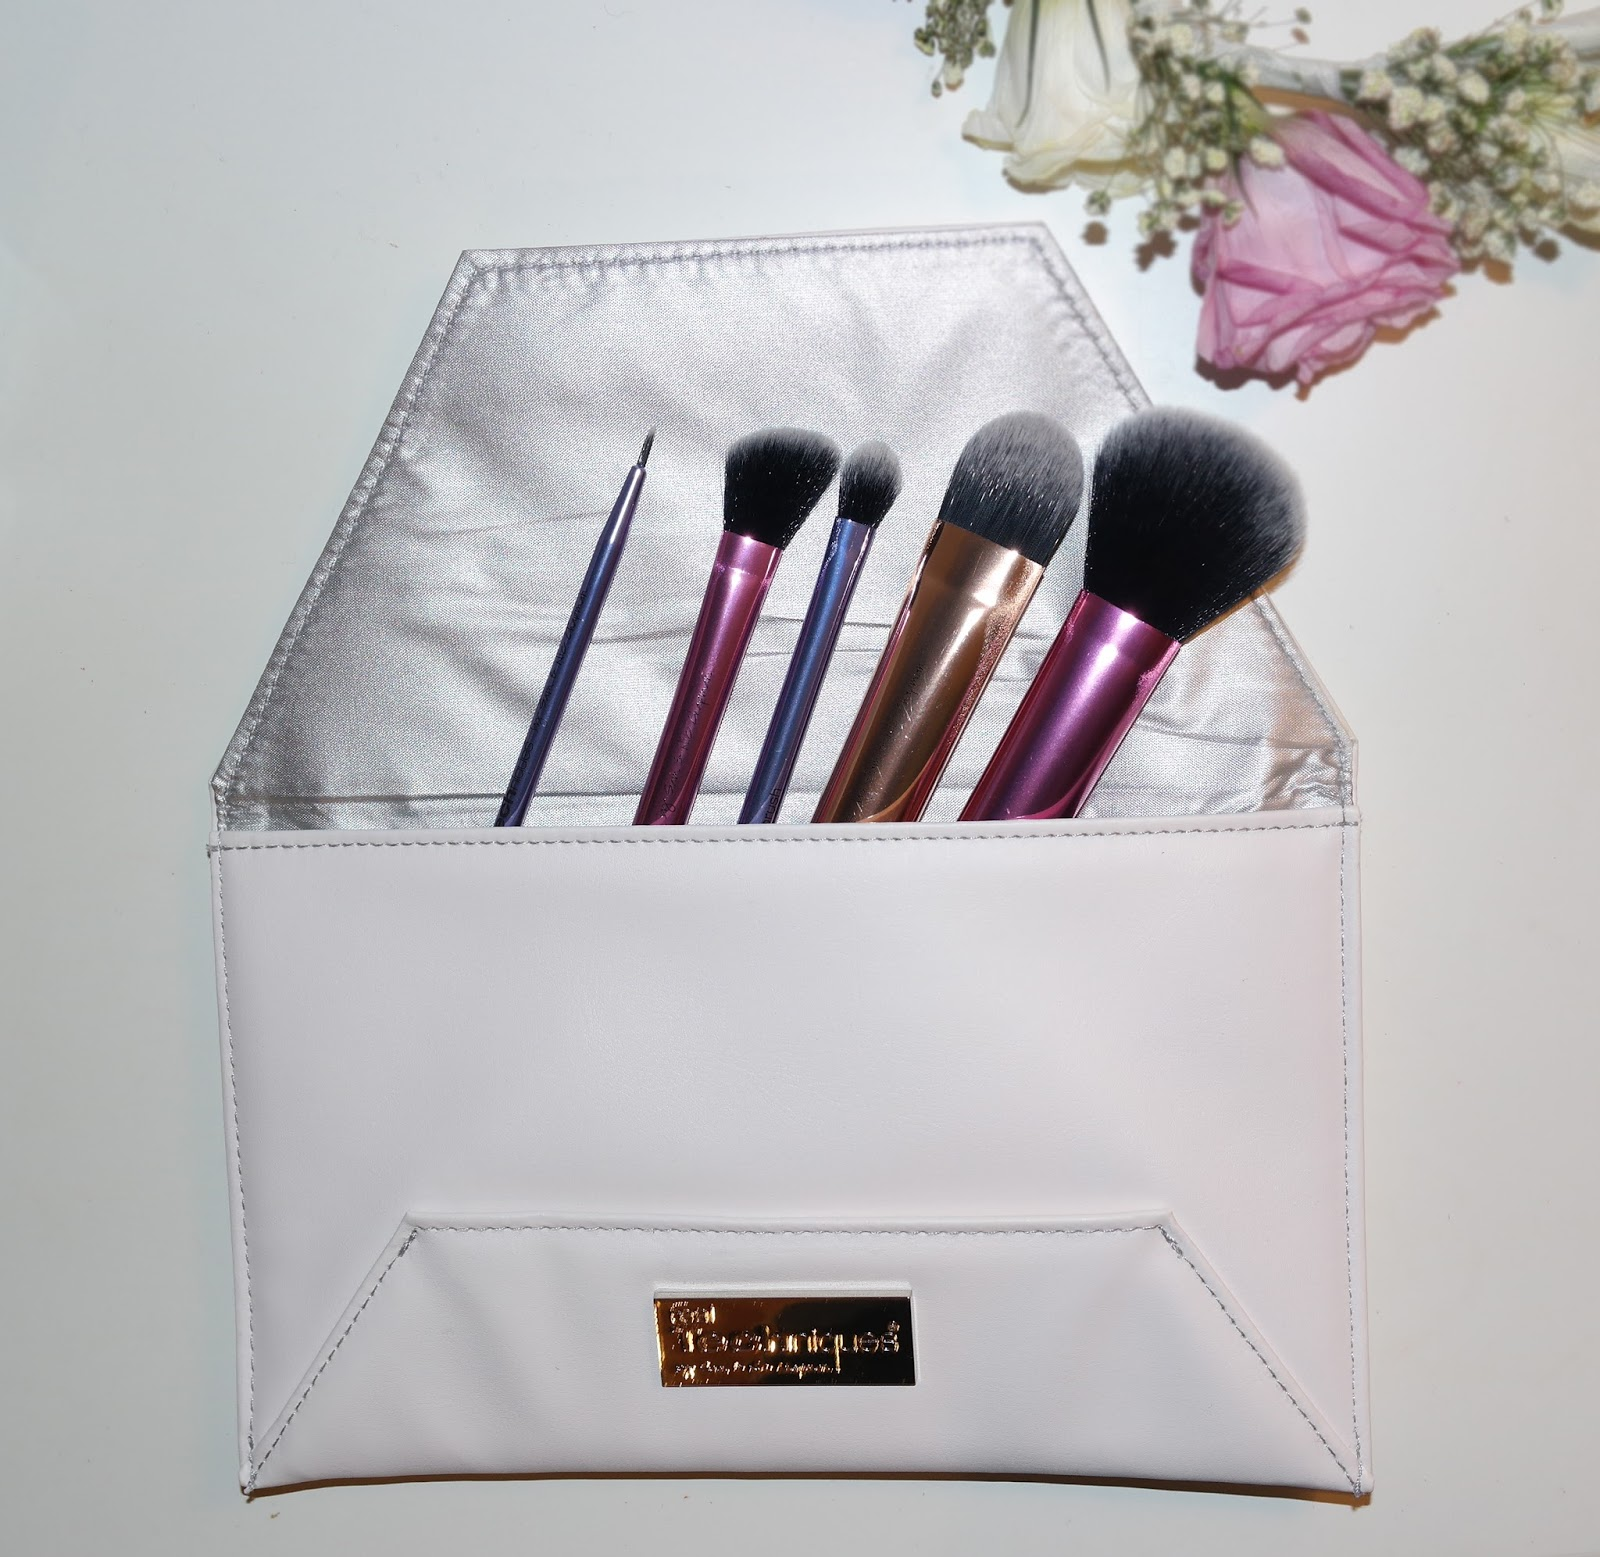 Real Techniques Deluxe gift brush set